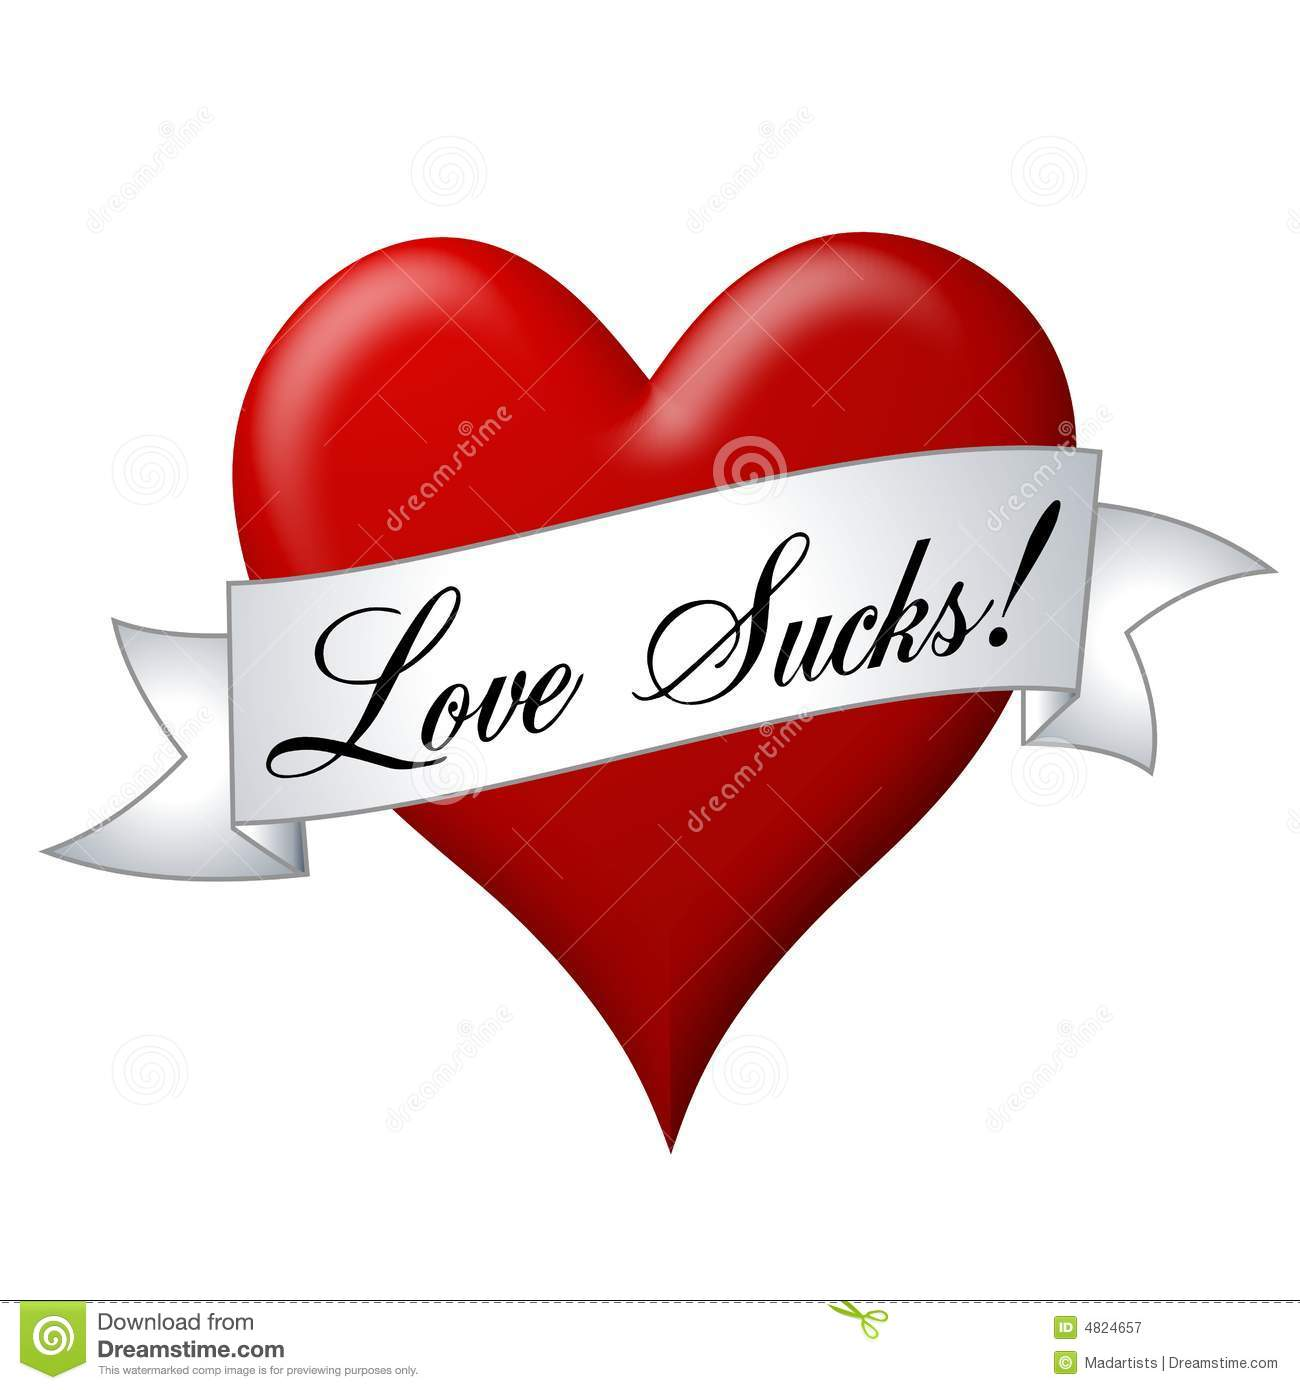 Love Sucks Banner With Heart Royalty Free Stock Photography.